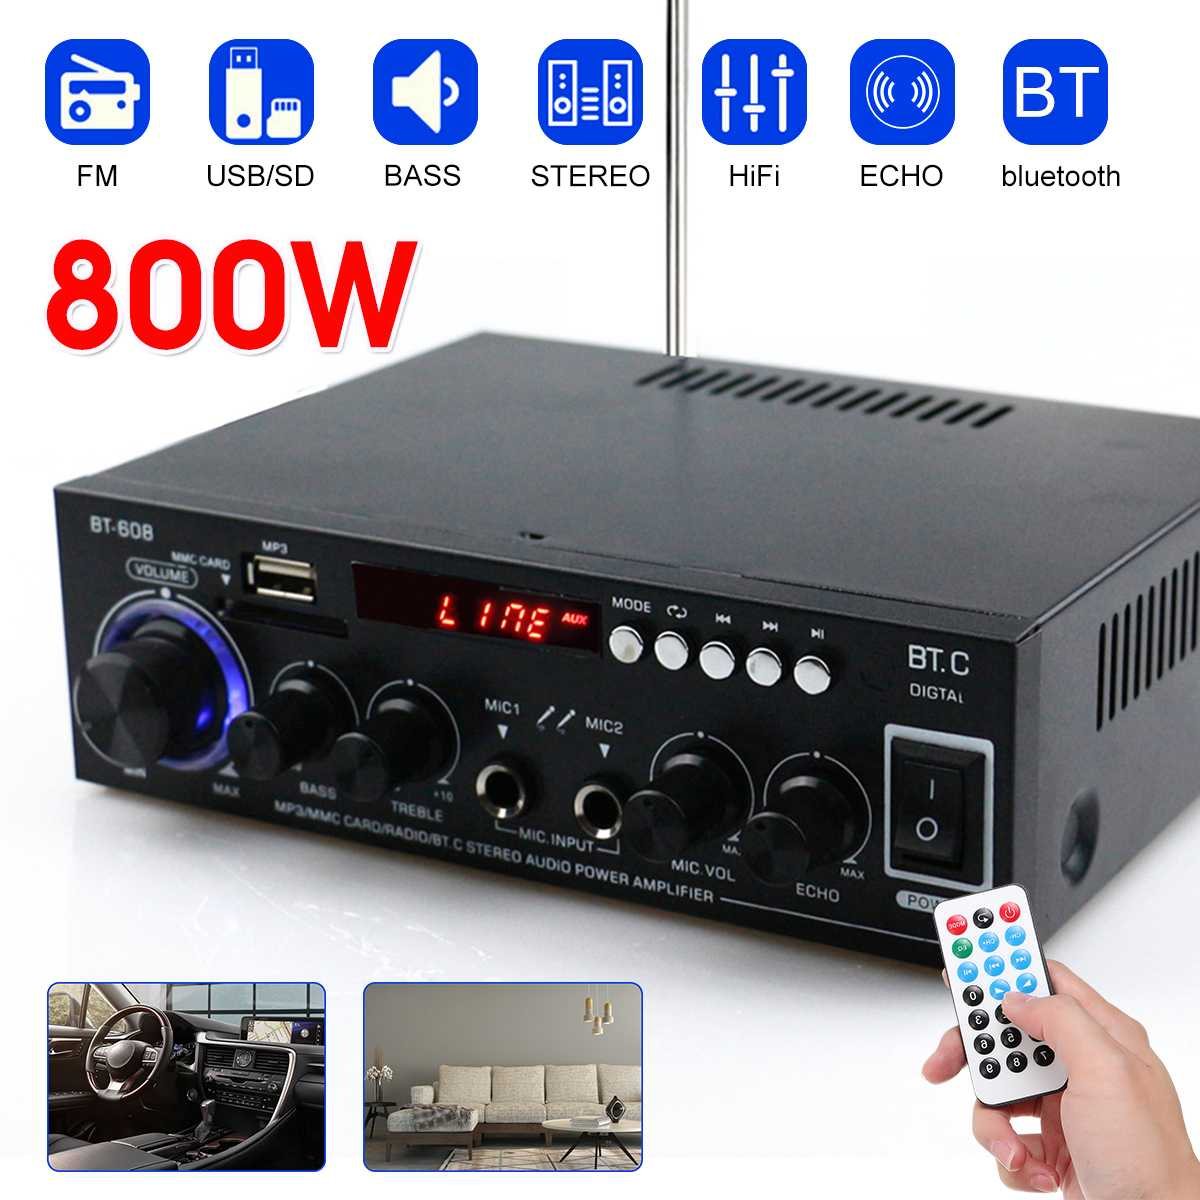 800W HIFI 2CH Audio Power Verstärker 110/220V Heimkino Sound System Audio Mini Verstärker FM USB SD bluetooth W/Fernbedienung